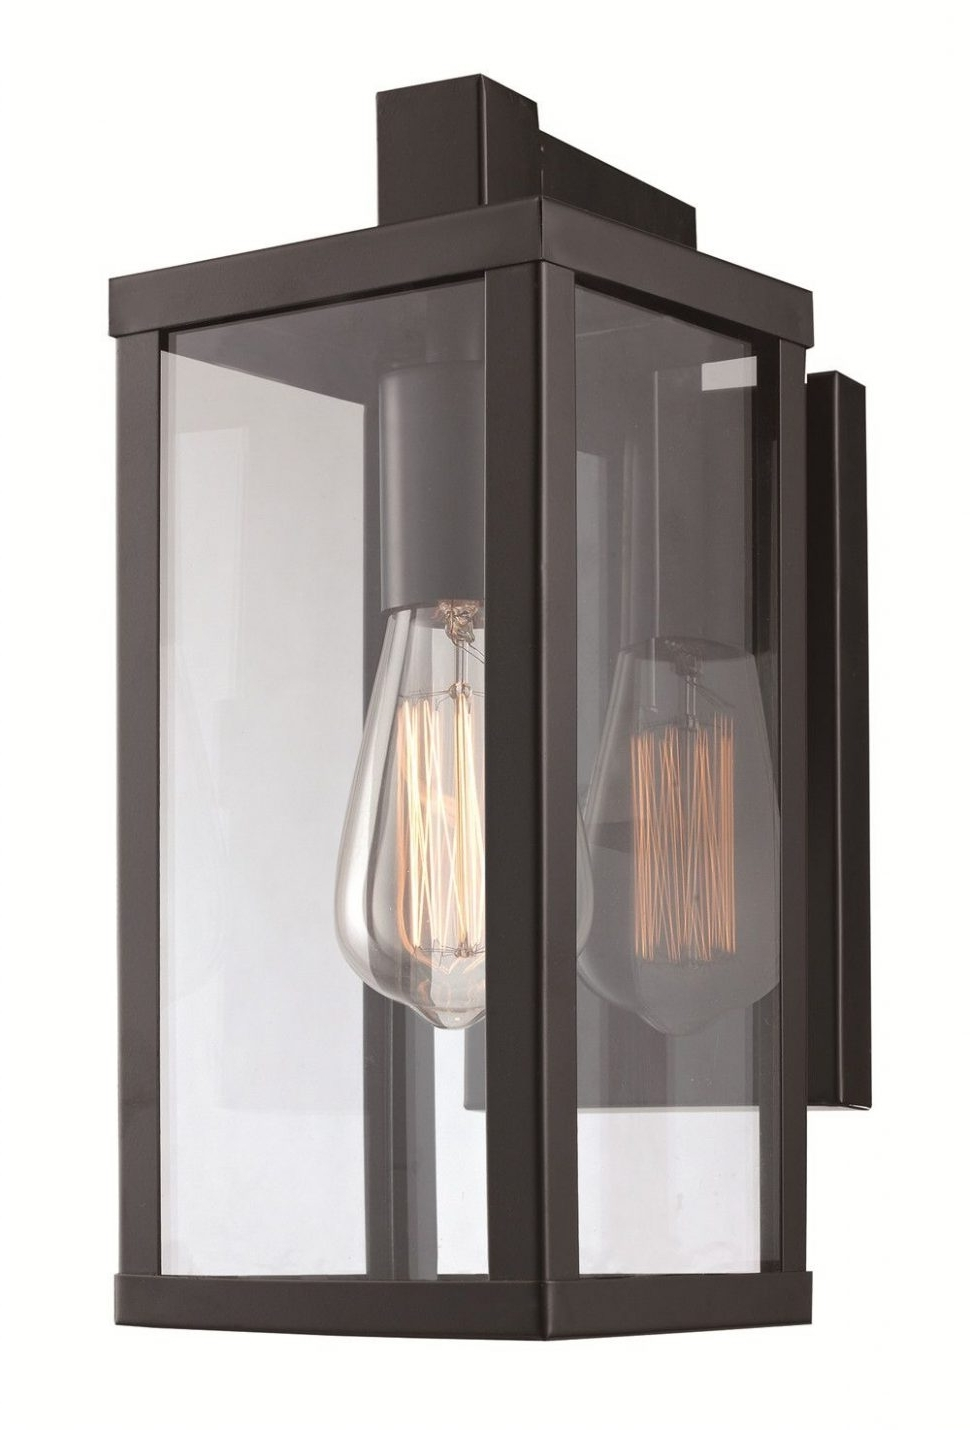 Well Liked Endon Lighting Outdoor Wall Lanterns For Furniture : Outdoor Lighting Lights Wall Lanterns Sea Gull Lantern (View 20 of 20)